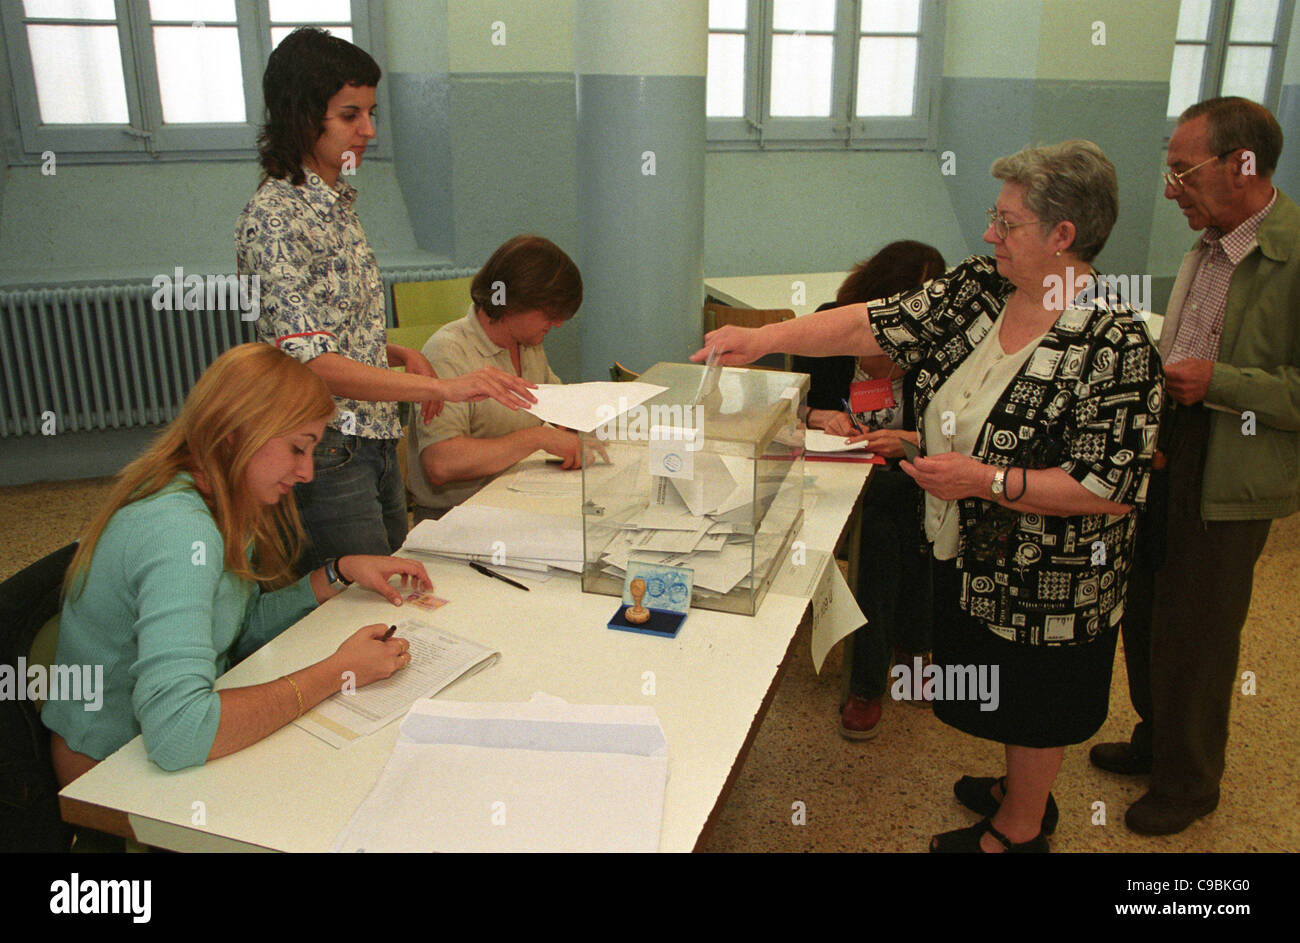 20.11.2011, Barcelona, Catalonia, Spain - Elections in Spain - Photo: At the parliamentary elections in Catalonia - Stock Image